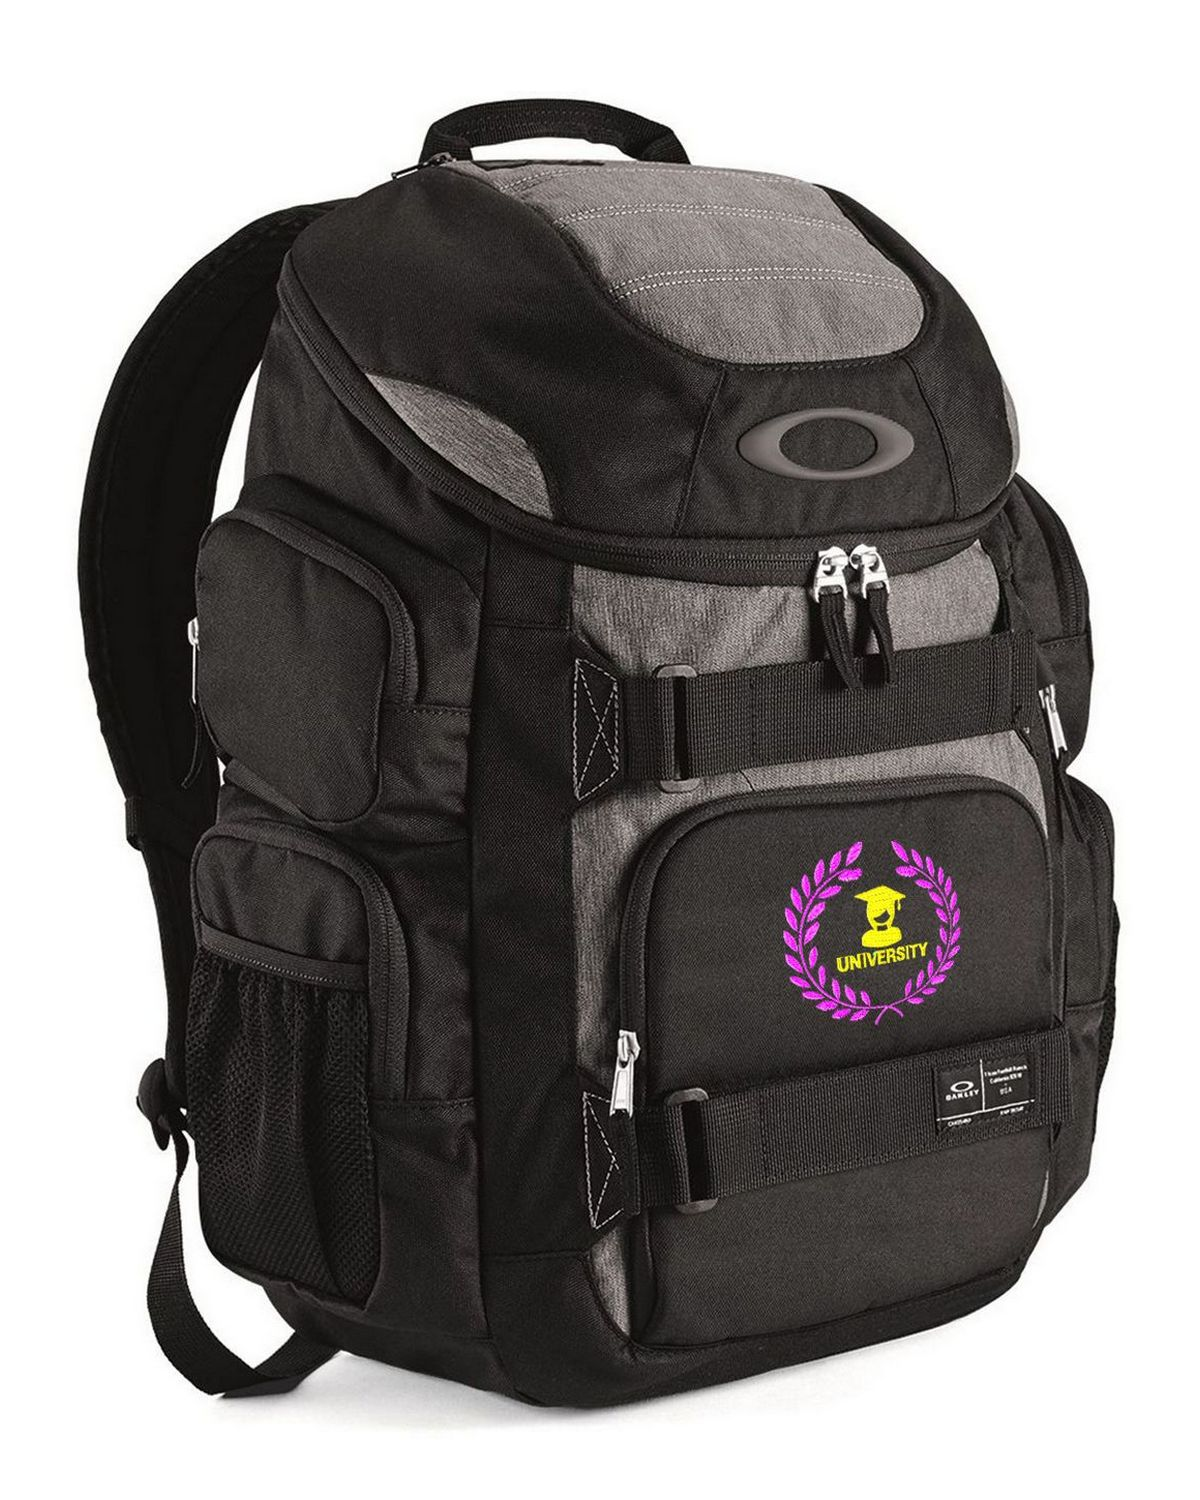 5f2a618300 Oakley Enduro 30L 2.0 Backpack - For Men - Free Shipping Available